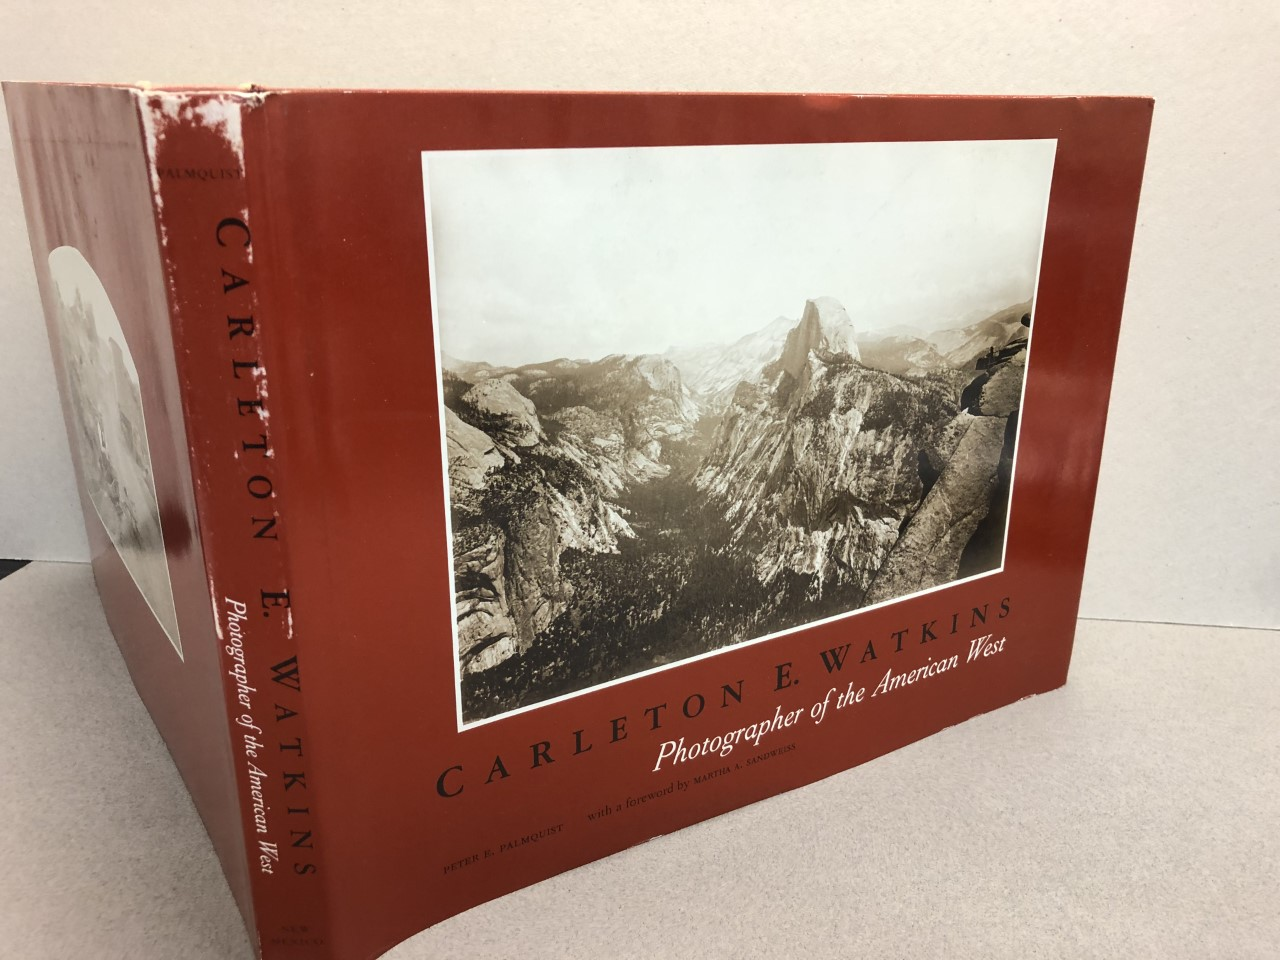 Image for CARLETON E. WATKINS : Photographer of the American West ( signed )